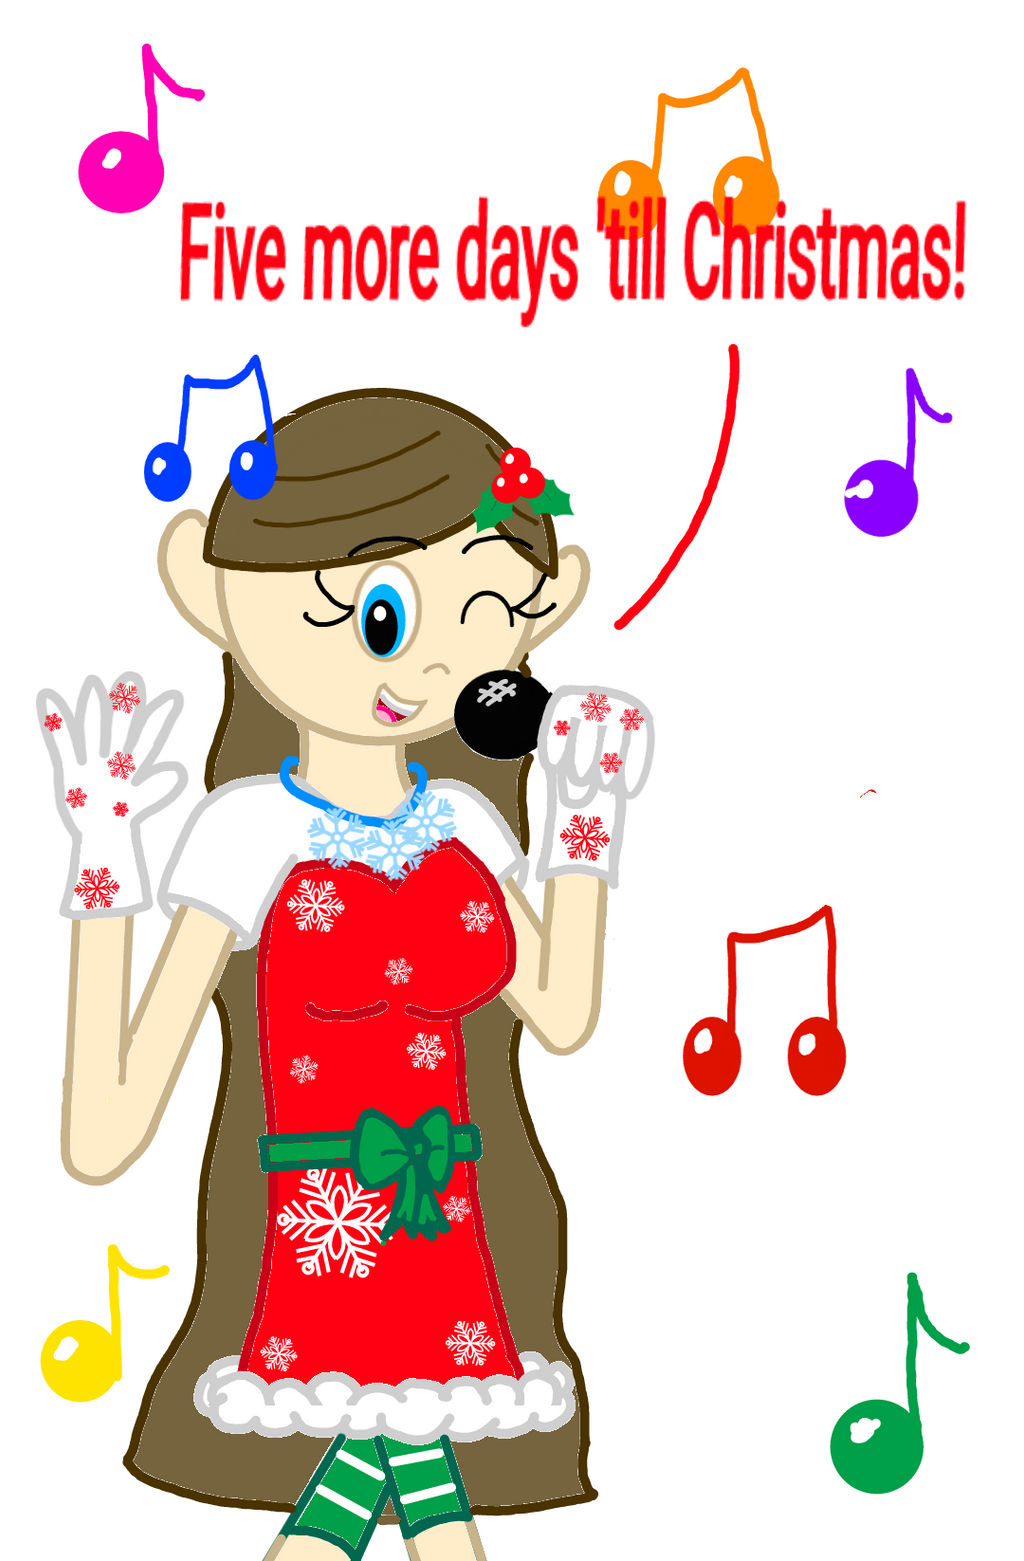 How Many More Days Until Christmas.Five More Days Till Christmas By Sweetiepie17 On Deviantart